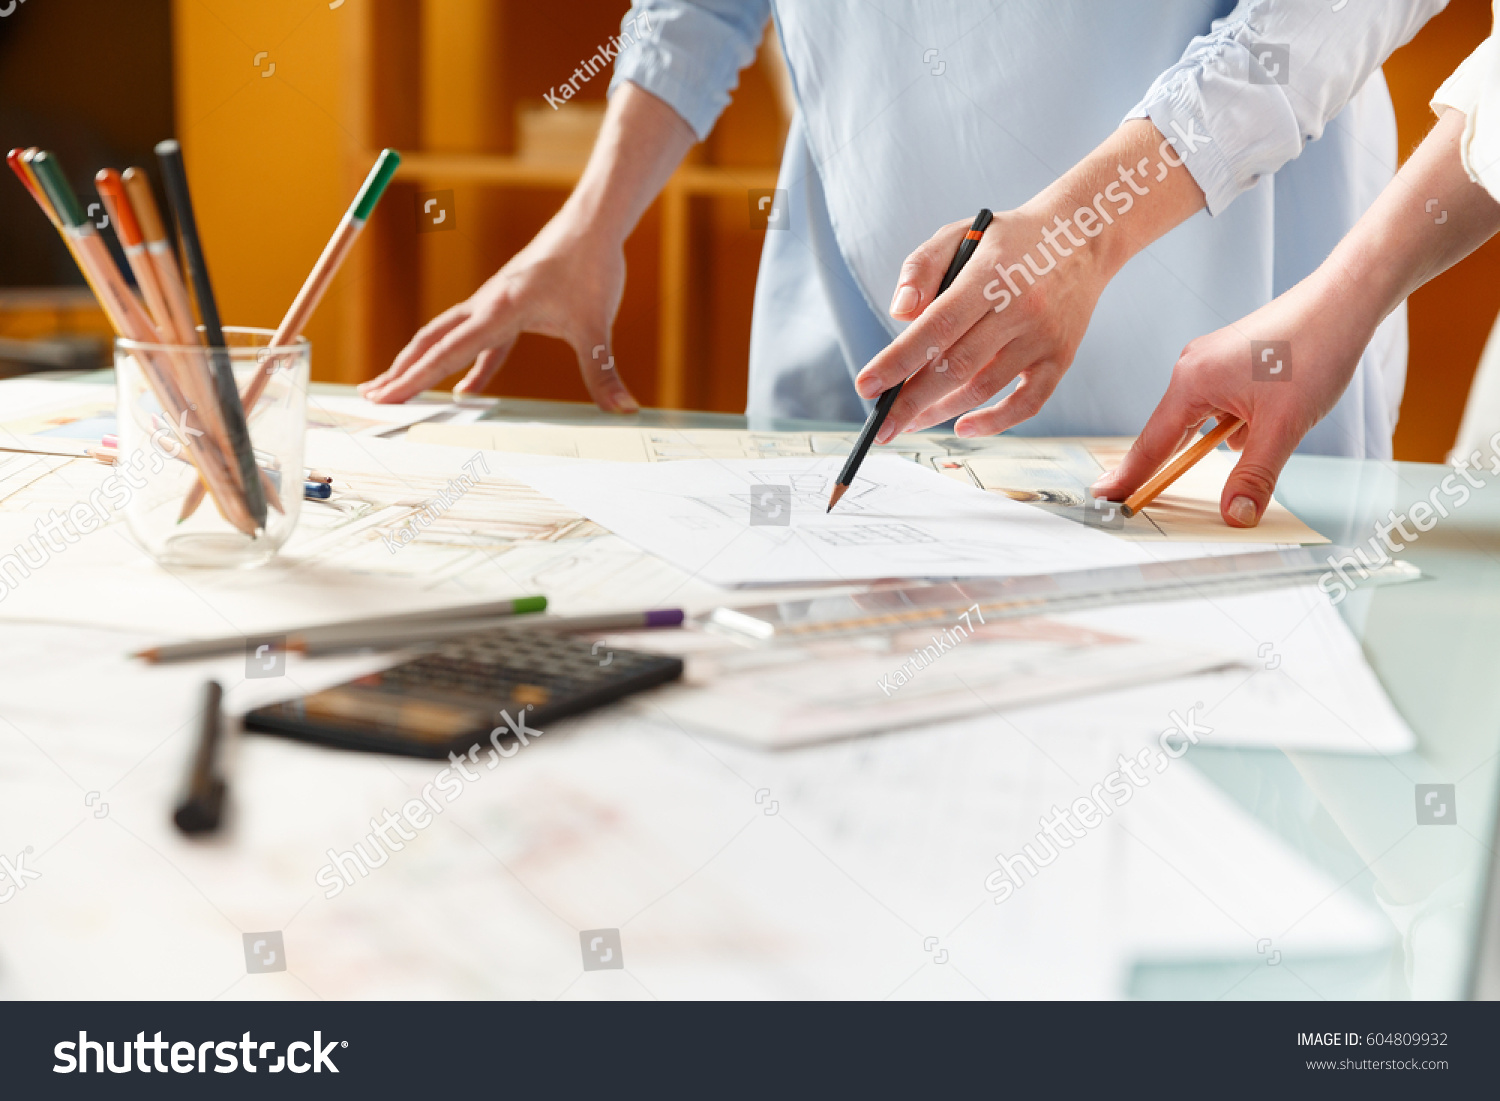 interior designers working on hand drawings of interior at work place